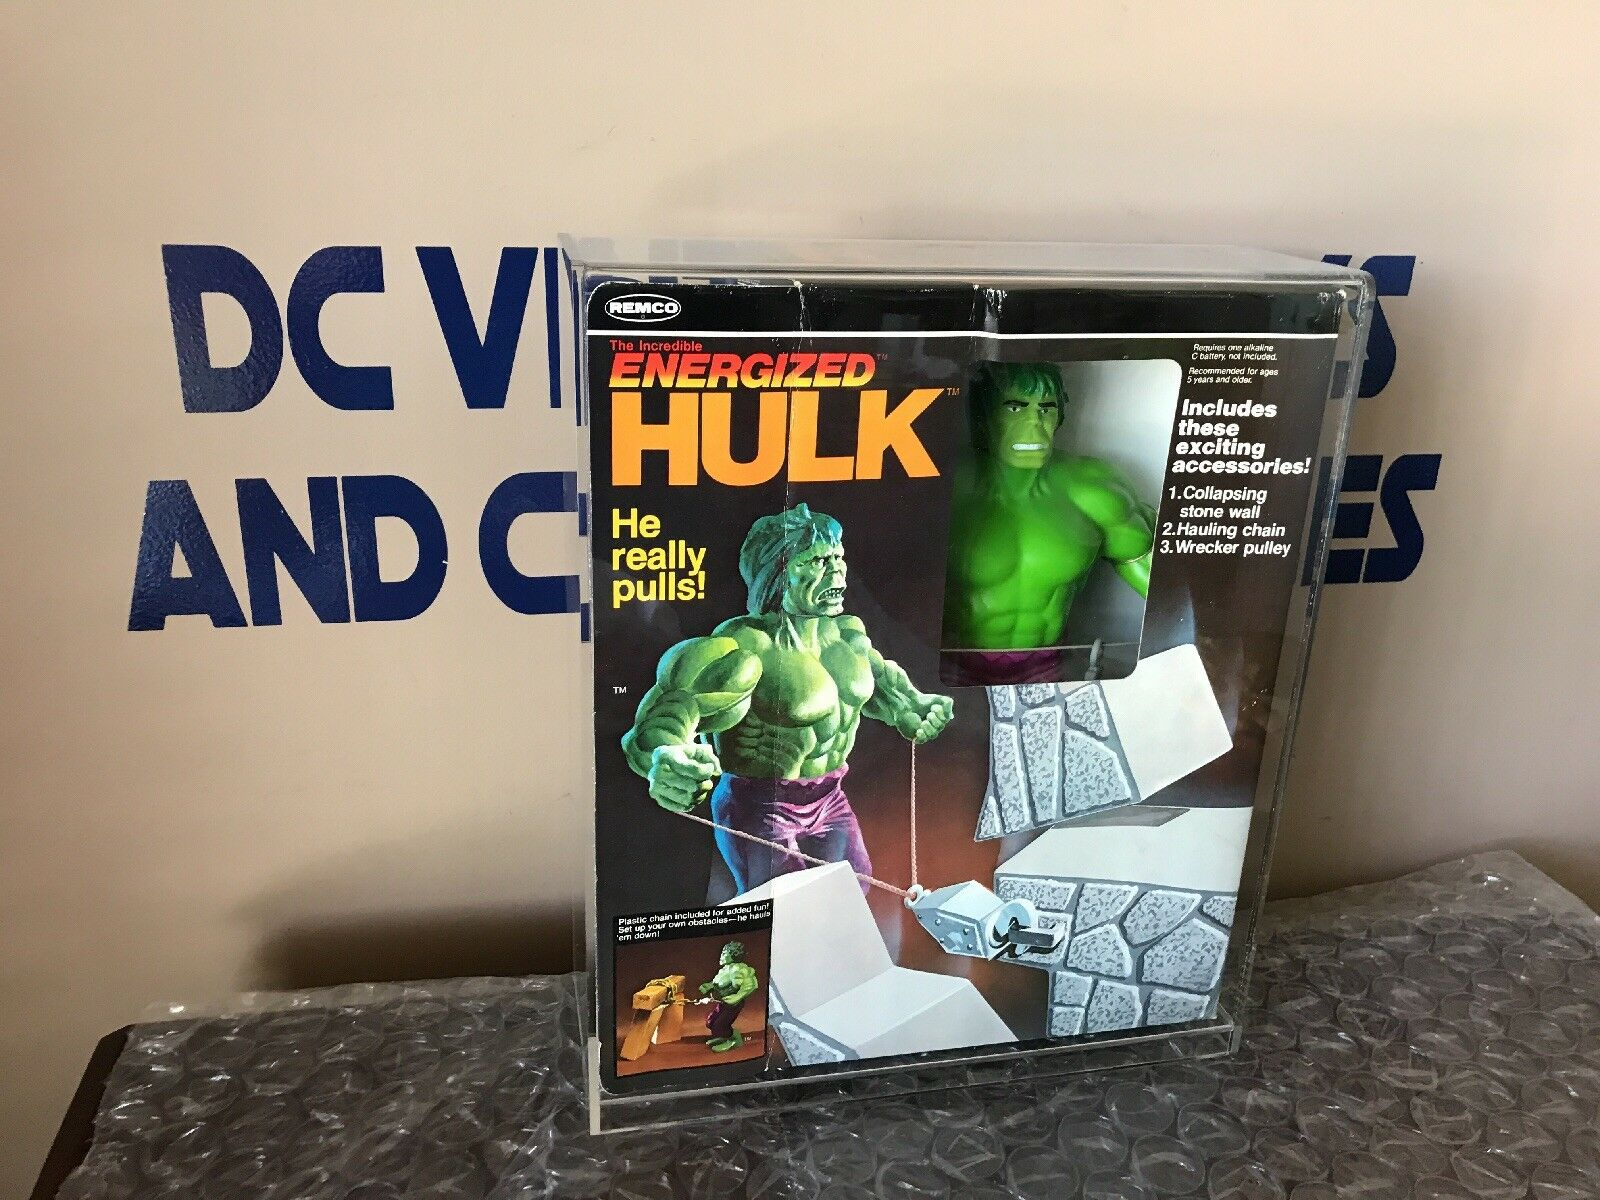 VINTAGE REMCO 1979 THE INCROTIBLE ENERGIZED HULK UNUSED Collapsing Stone Wall